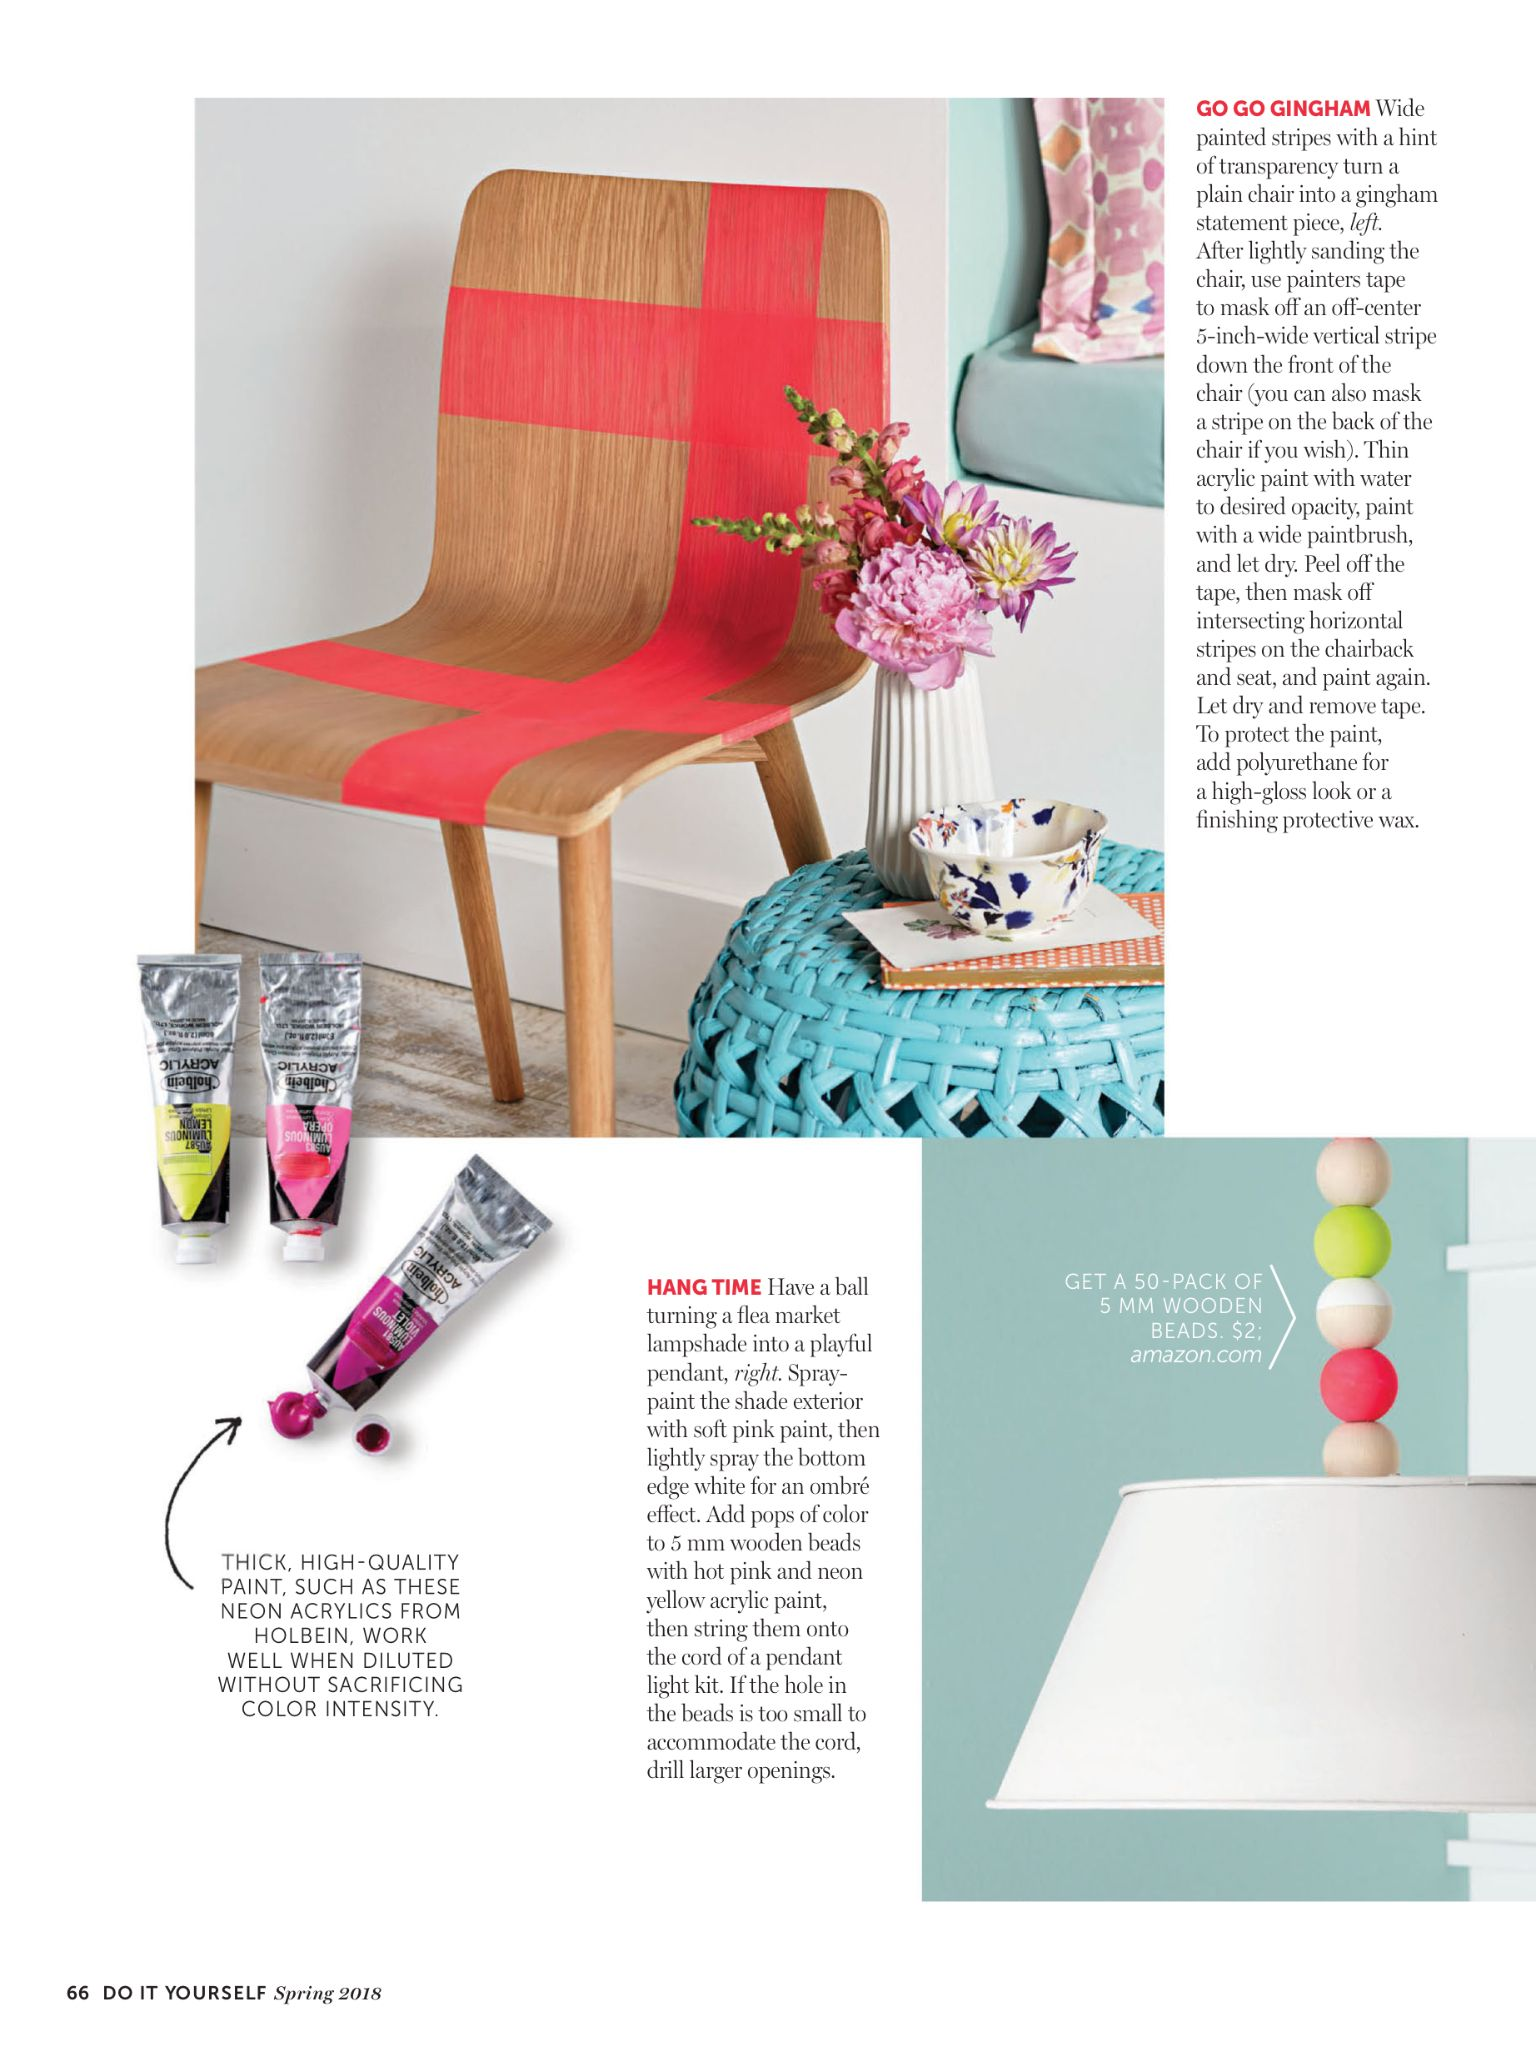 Color your world from do it yourself magazine spring 2018 read it color your world from do it yourself magazine spring 2018 solutioingenieria Gallery